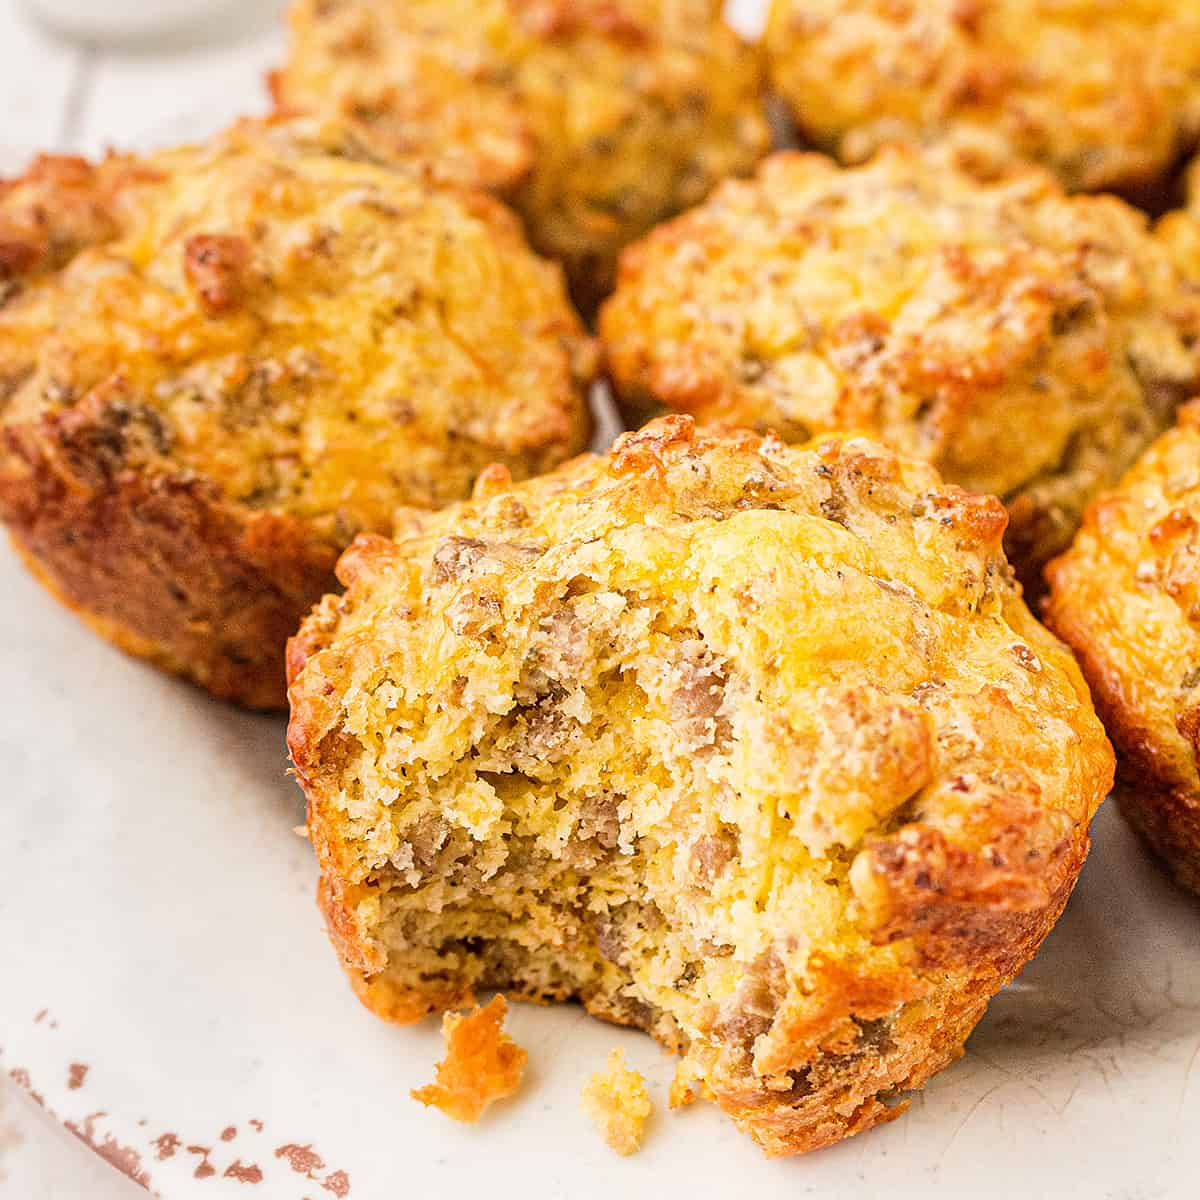 Easy Sausage Muffins on a serving plate; one muffins with a bite taken.